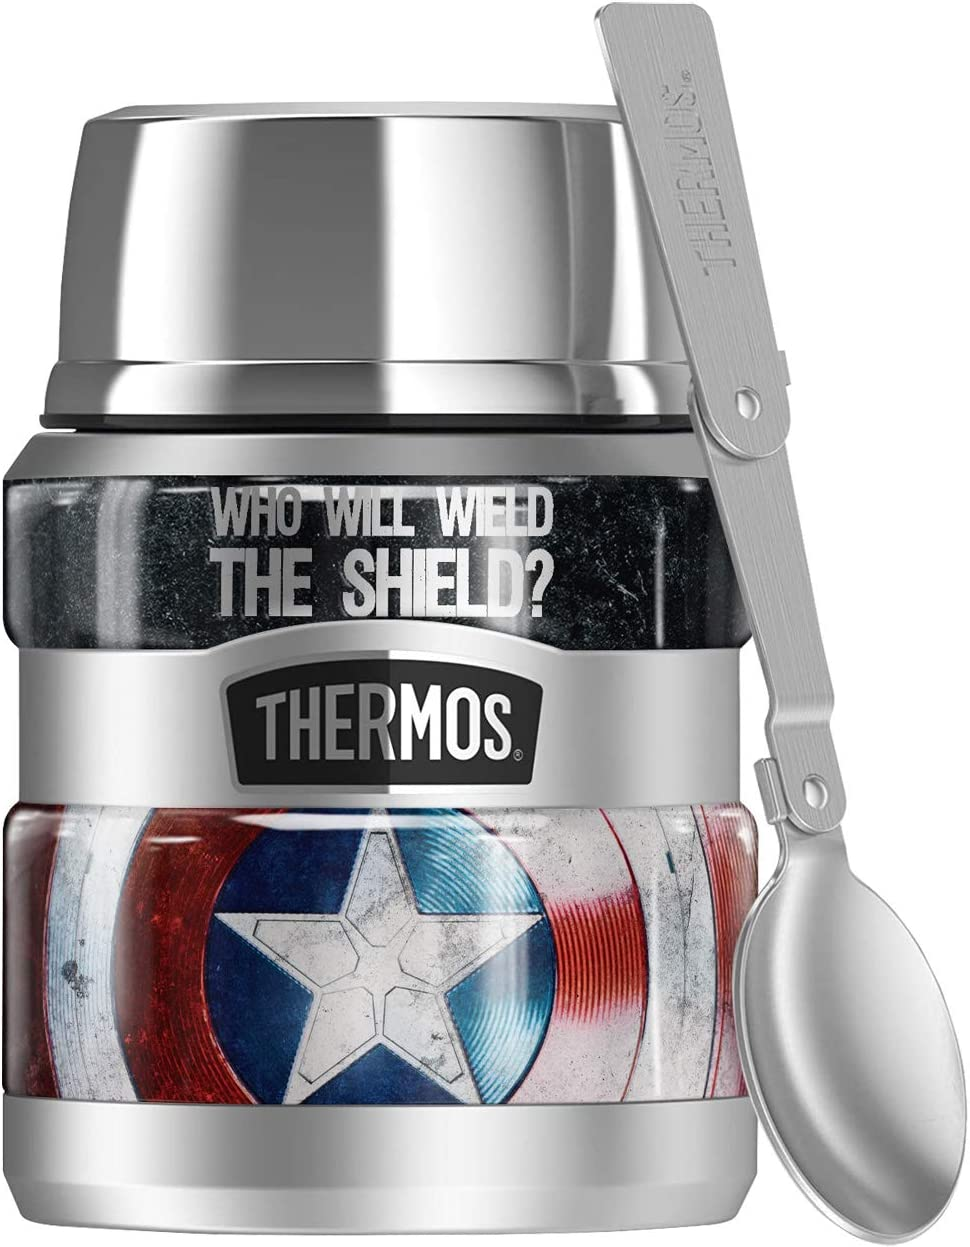 Marvel - The Falcon And The Winter Soldier, Captain America Shield, Wield The Shield THERMOS STAINLESS KING Stainless Steel Food Jar with Folding Spoon, Vacuum insulated & Double Wall, 16oz